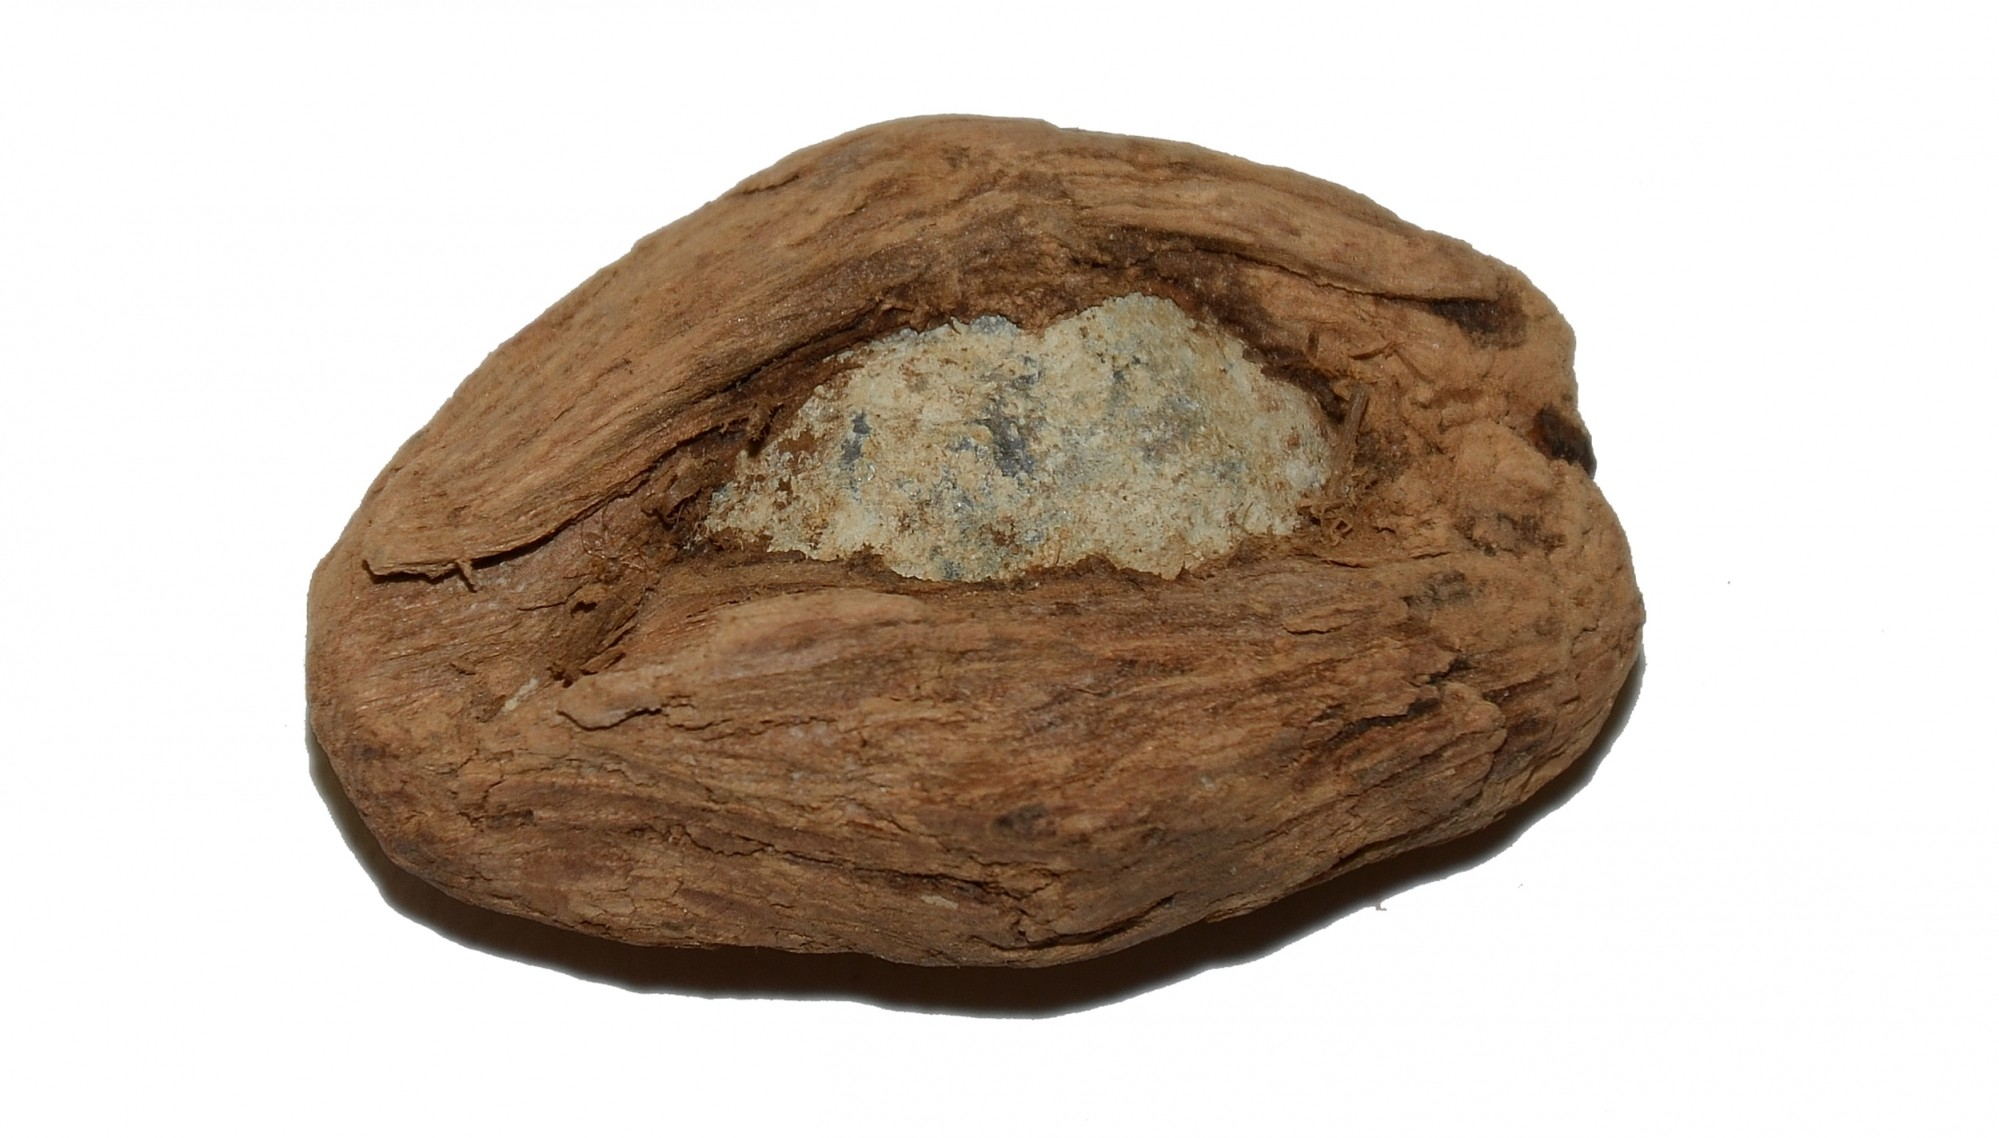 BULLET IN WOOD RECOVERED AT CHANCELLORSVILLE, VA